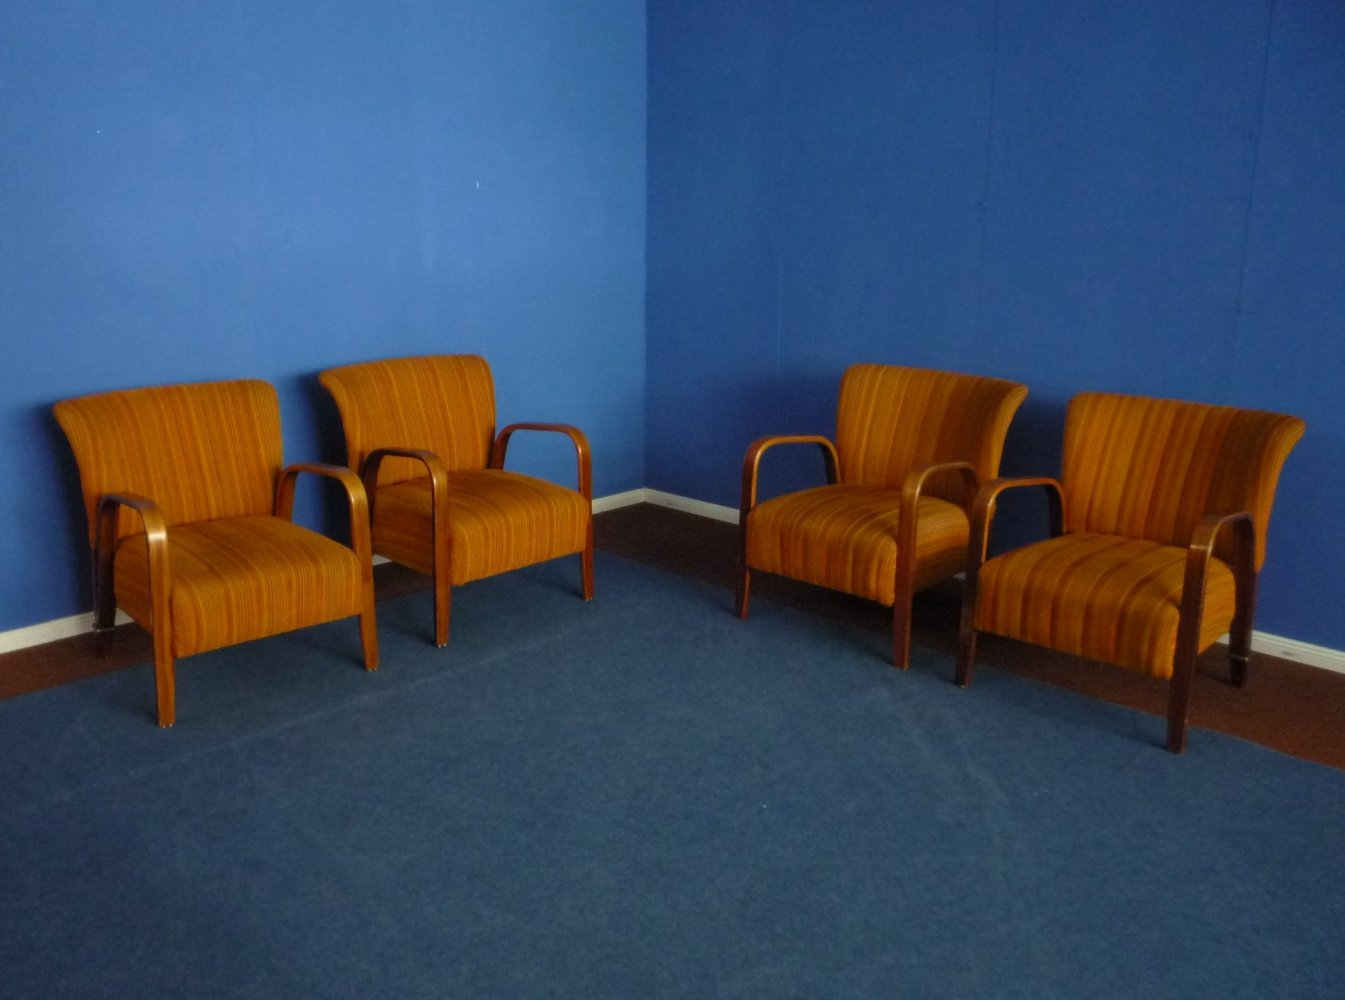 Set of 4 French Armchairs by Hugues Steiner for Steiner Meubles, 1940s